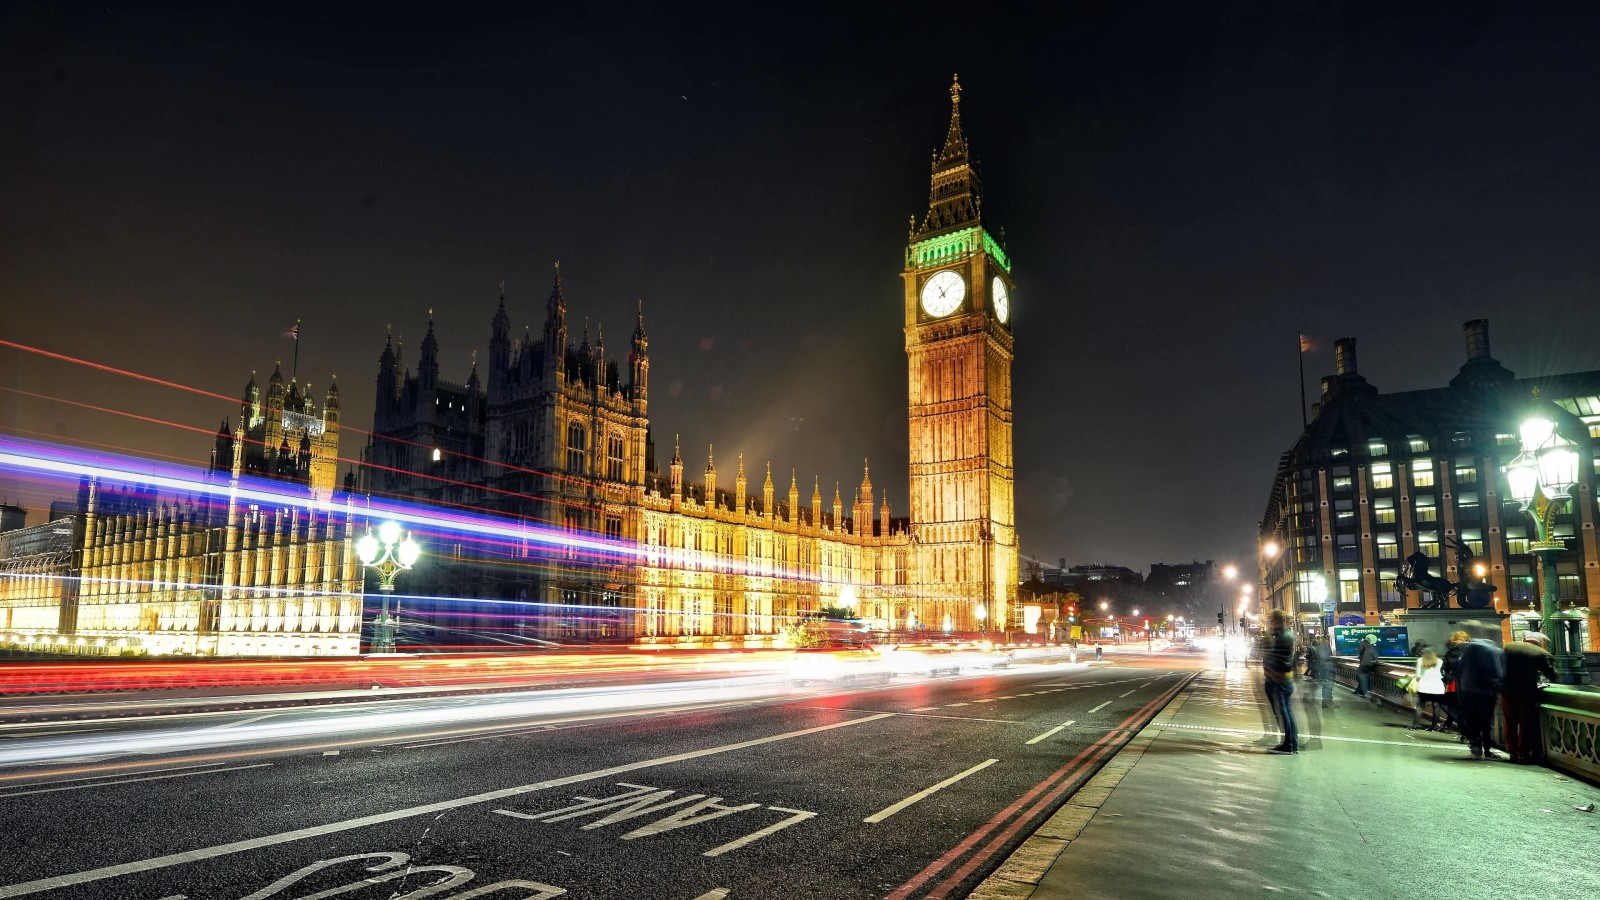 Big Ben at Night Wallpaper for Desktop 1600x900